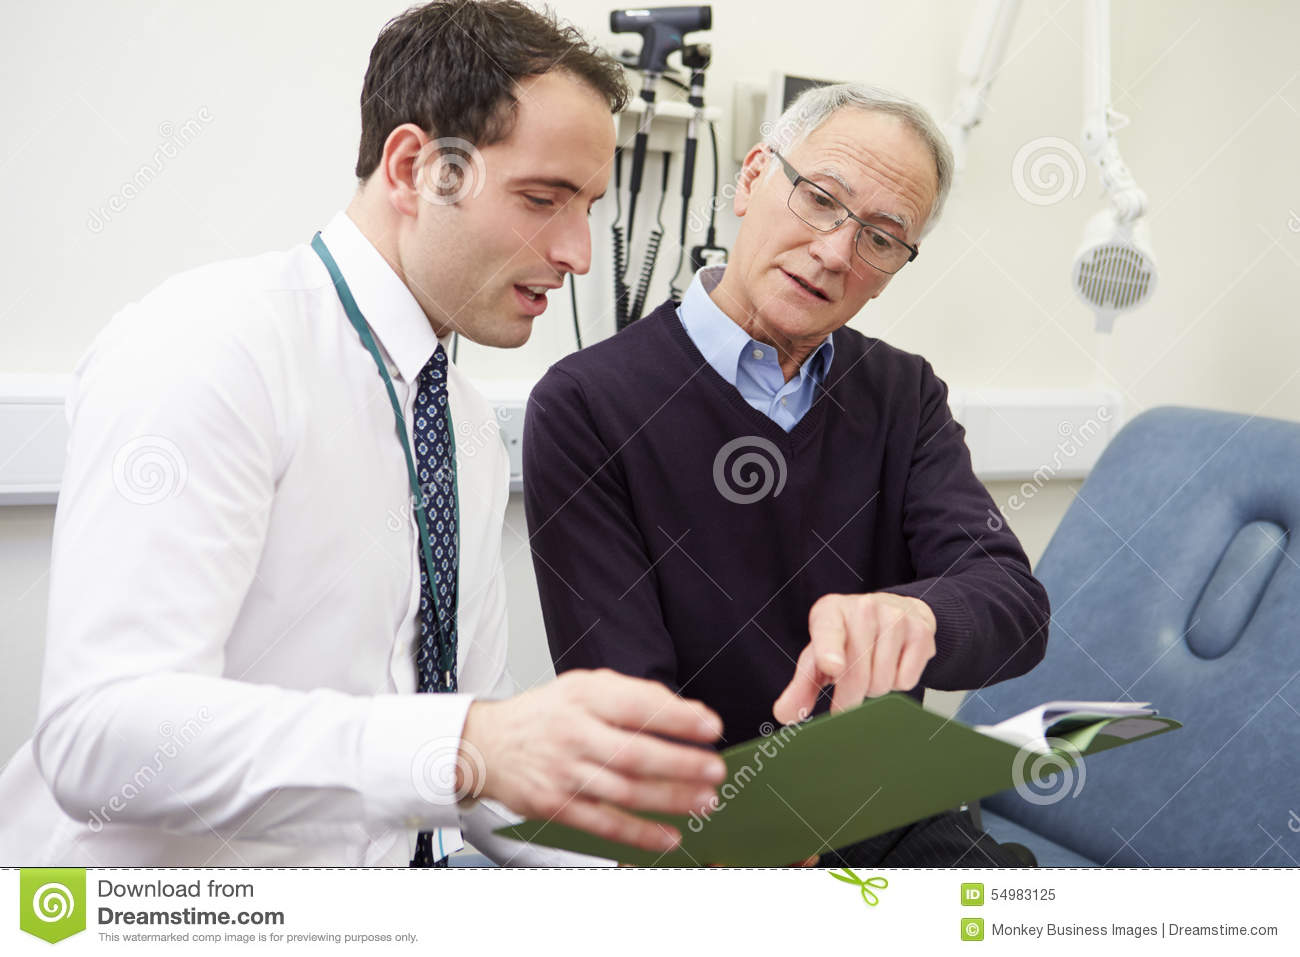 Berater Discussing Test Results mit Patienten